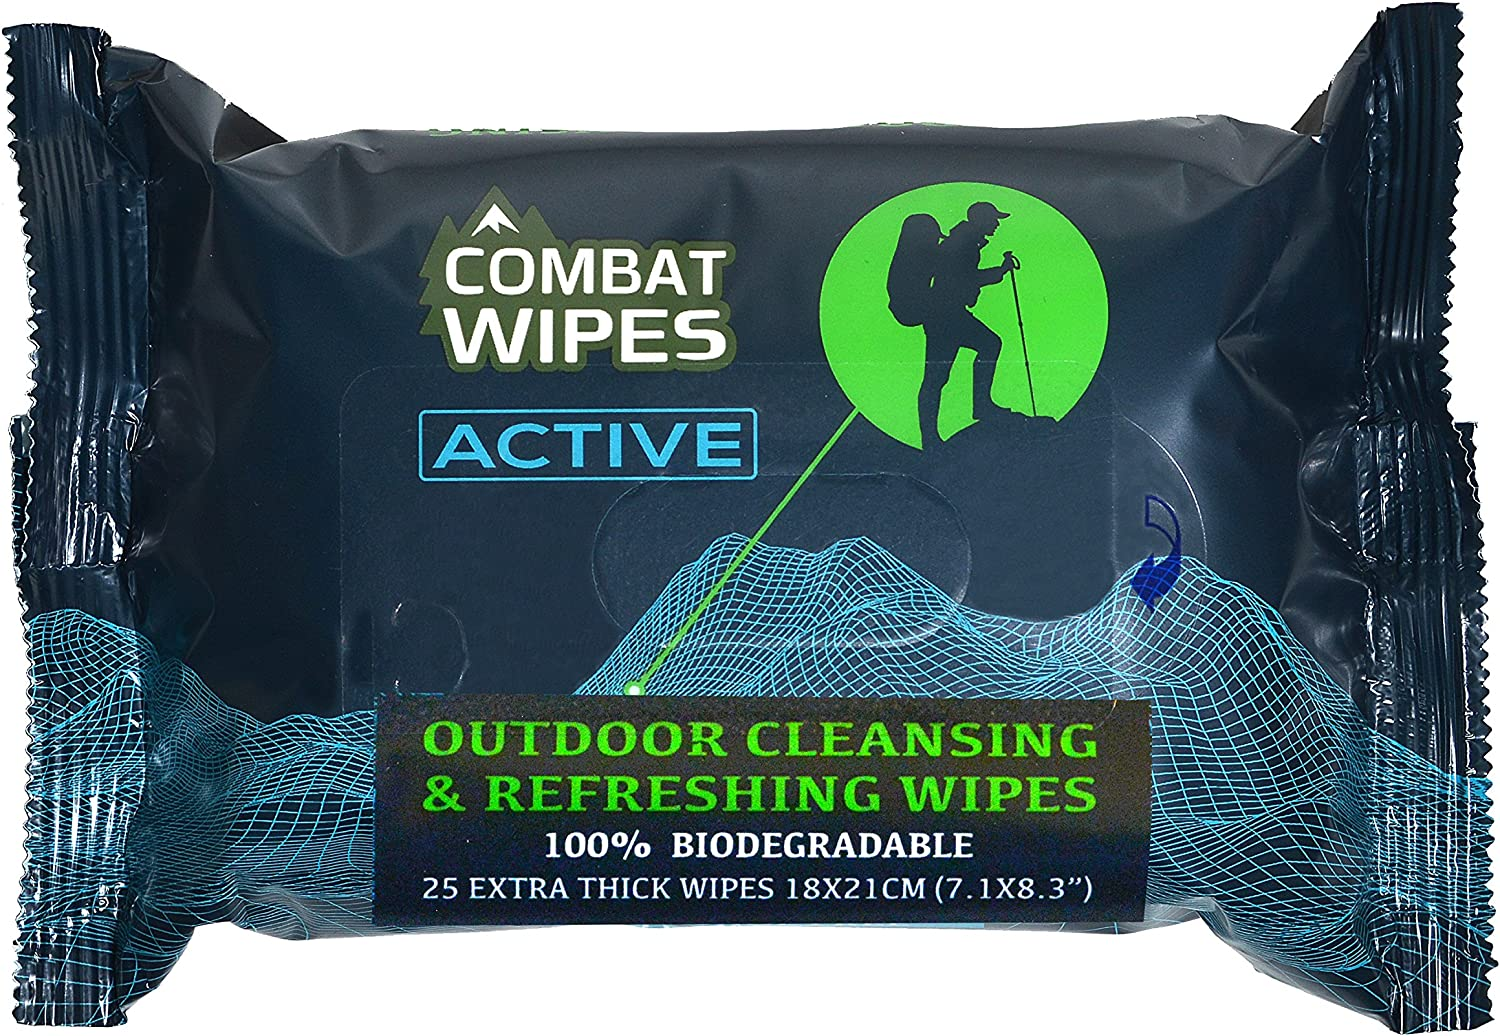 Combat Wipes Active Outdoor Wet Wipes | Extra Thick, Ultralight, Biodegradable, Body & Hand Cleansing/Refreshing Cloths for Camping, Gym & Backpacking w/Natural Aloe & Vitamin E (25 Wipes): Sports & Outdoors